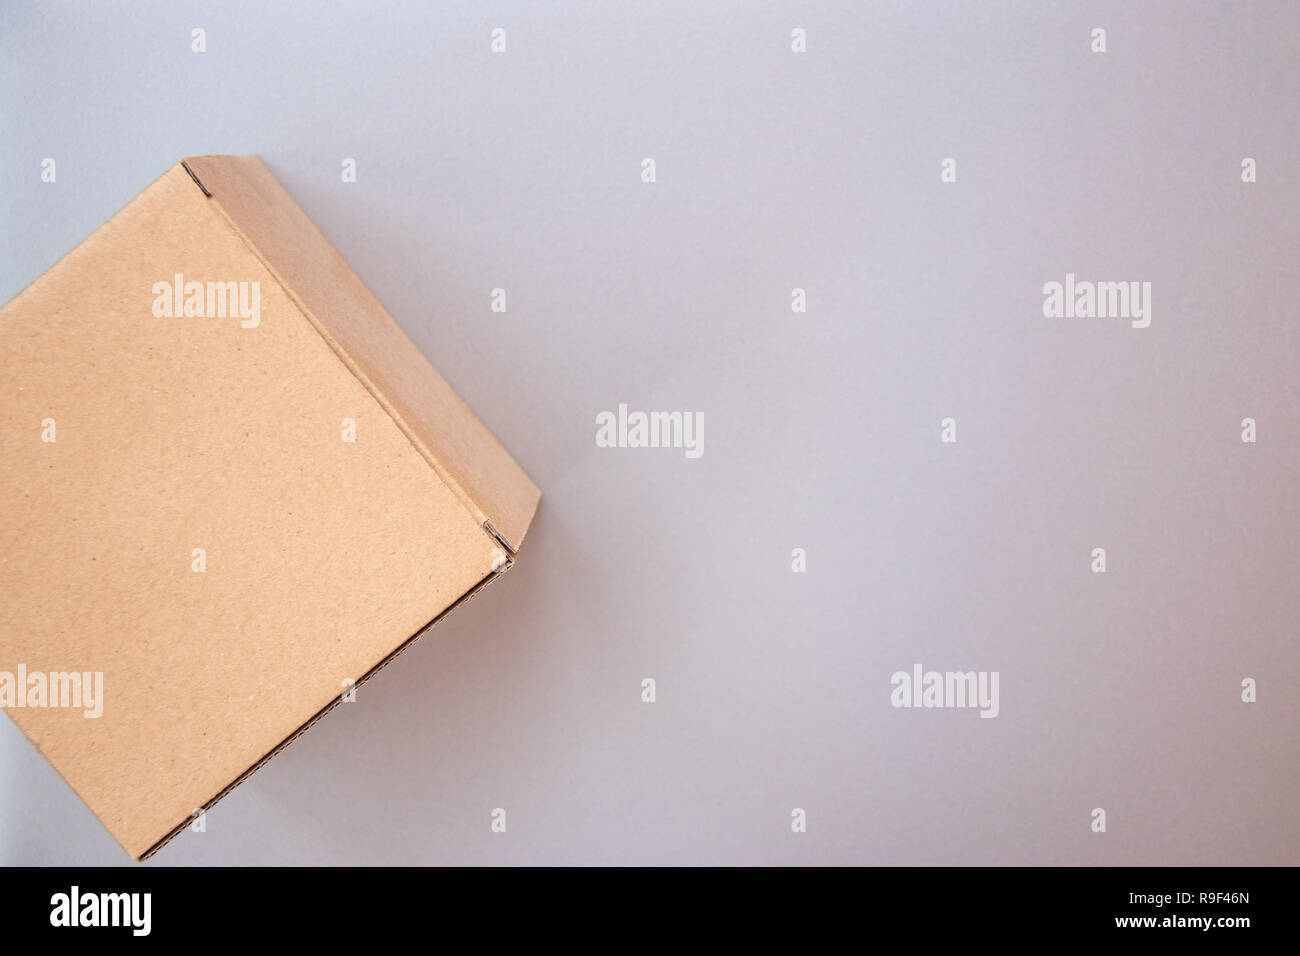 Corner of closed big square cardboard craft gift box on the silver gray metal background - Stock Image